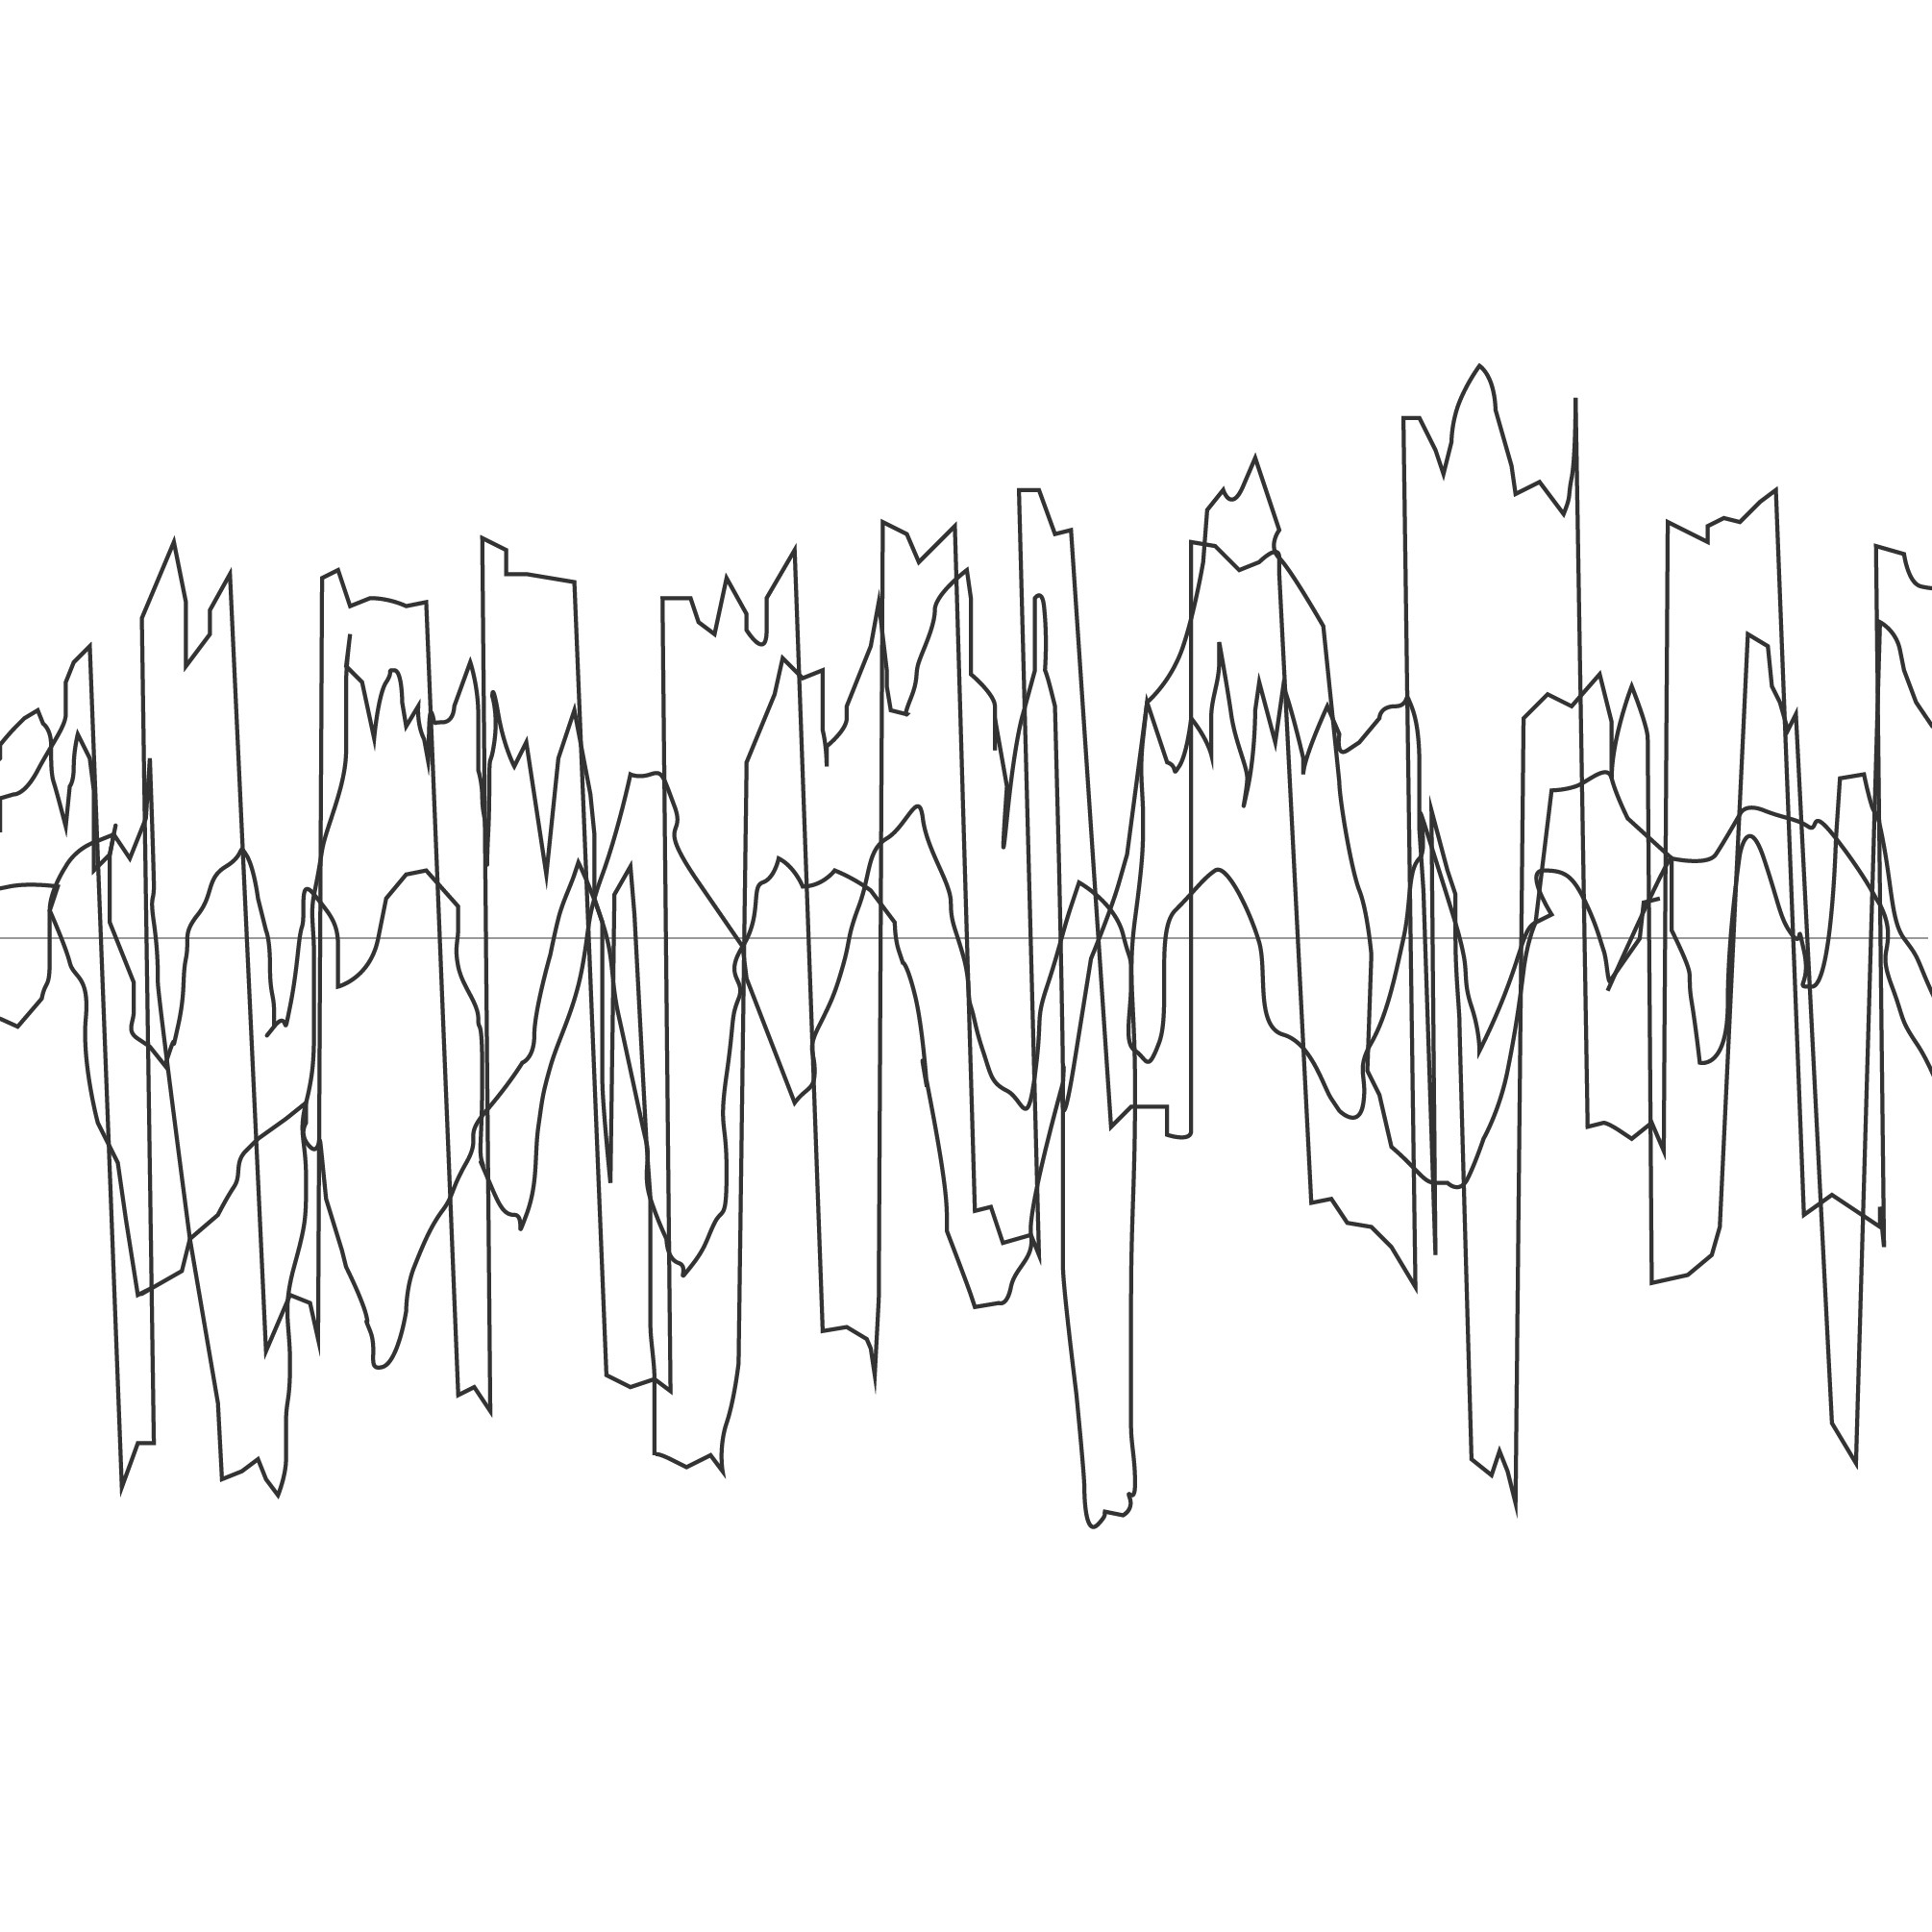 sound wave draw the sound wave by hand feng enjoy arts